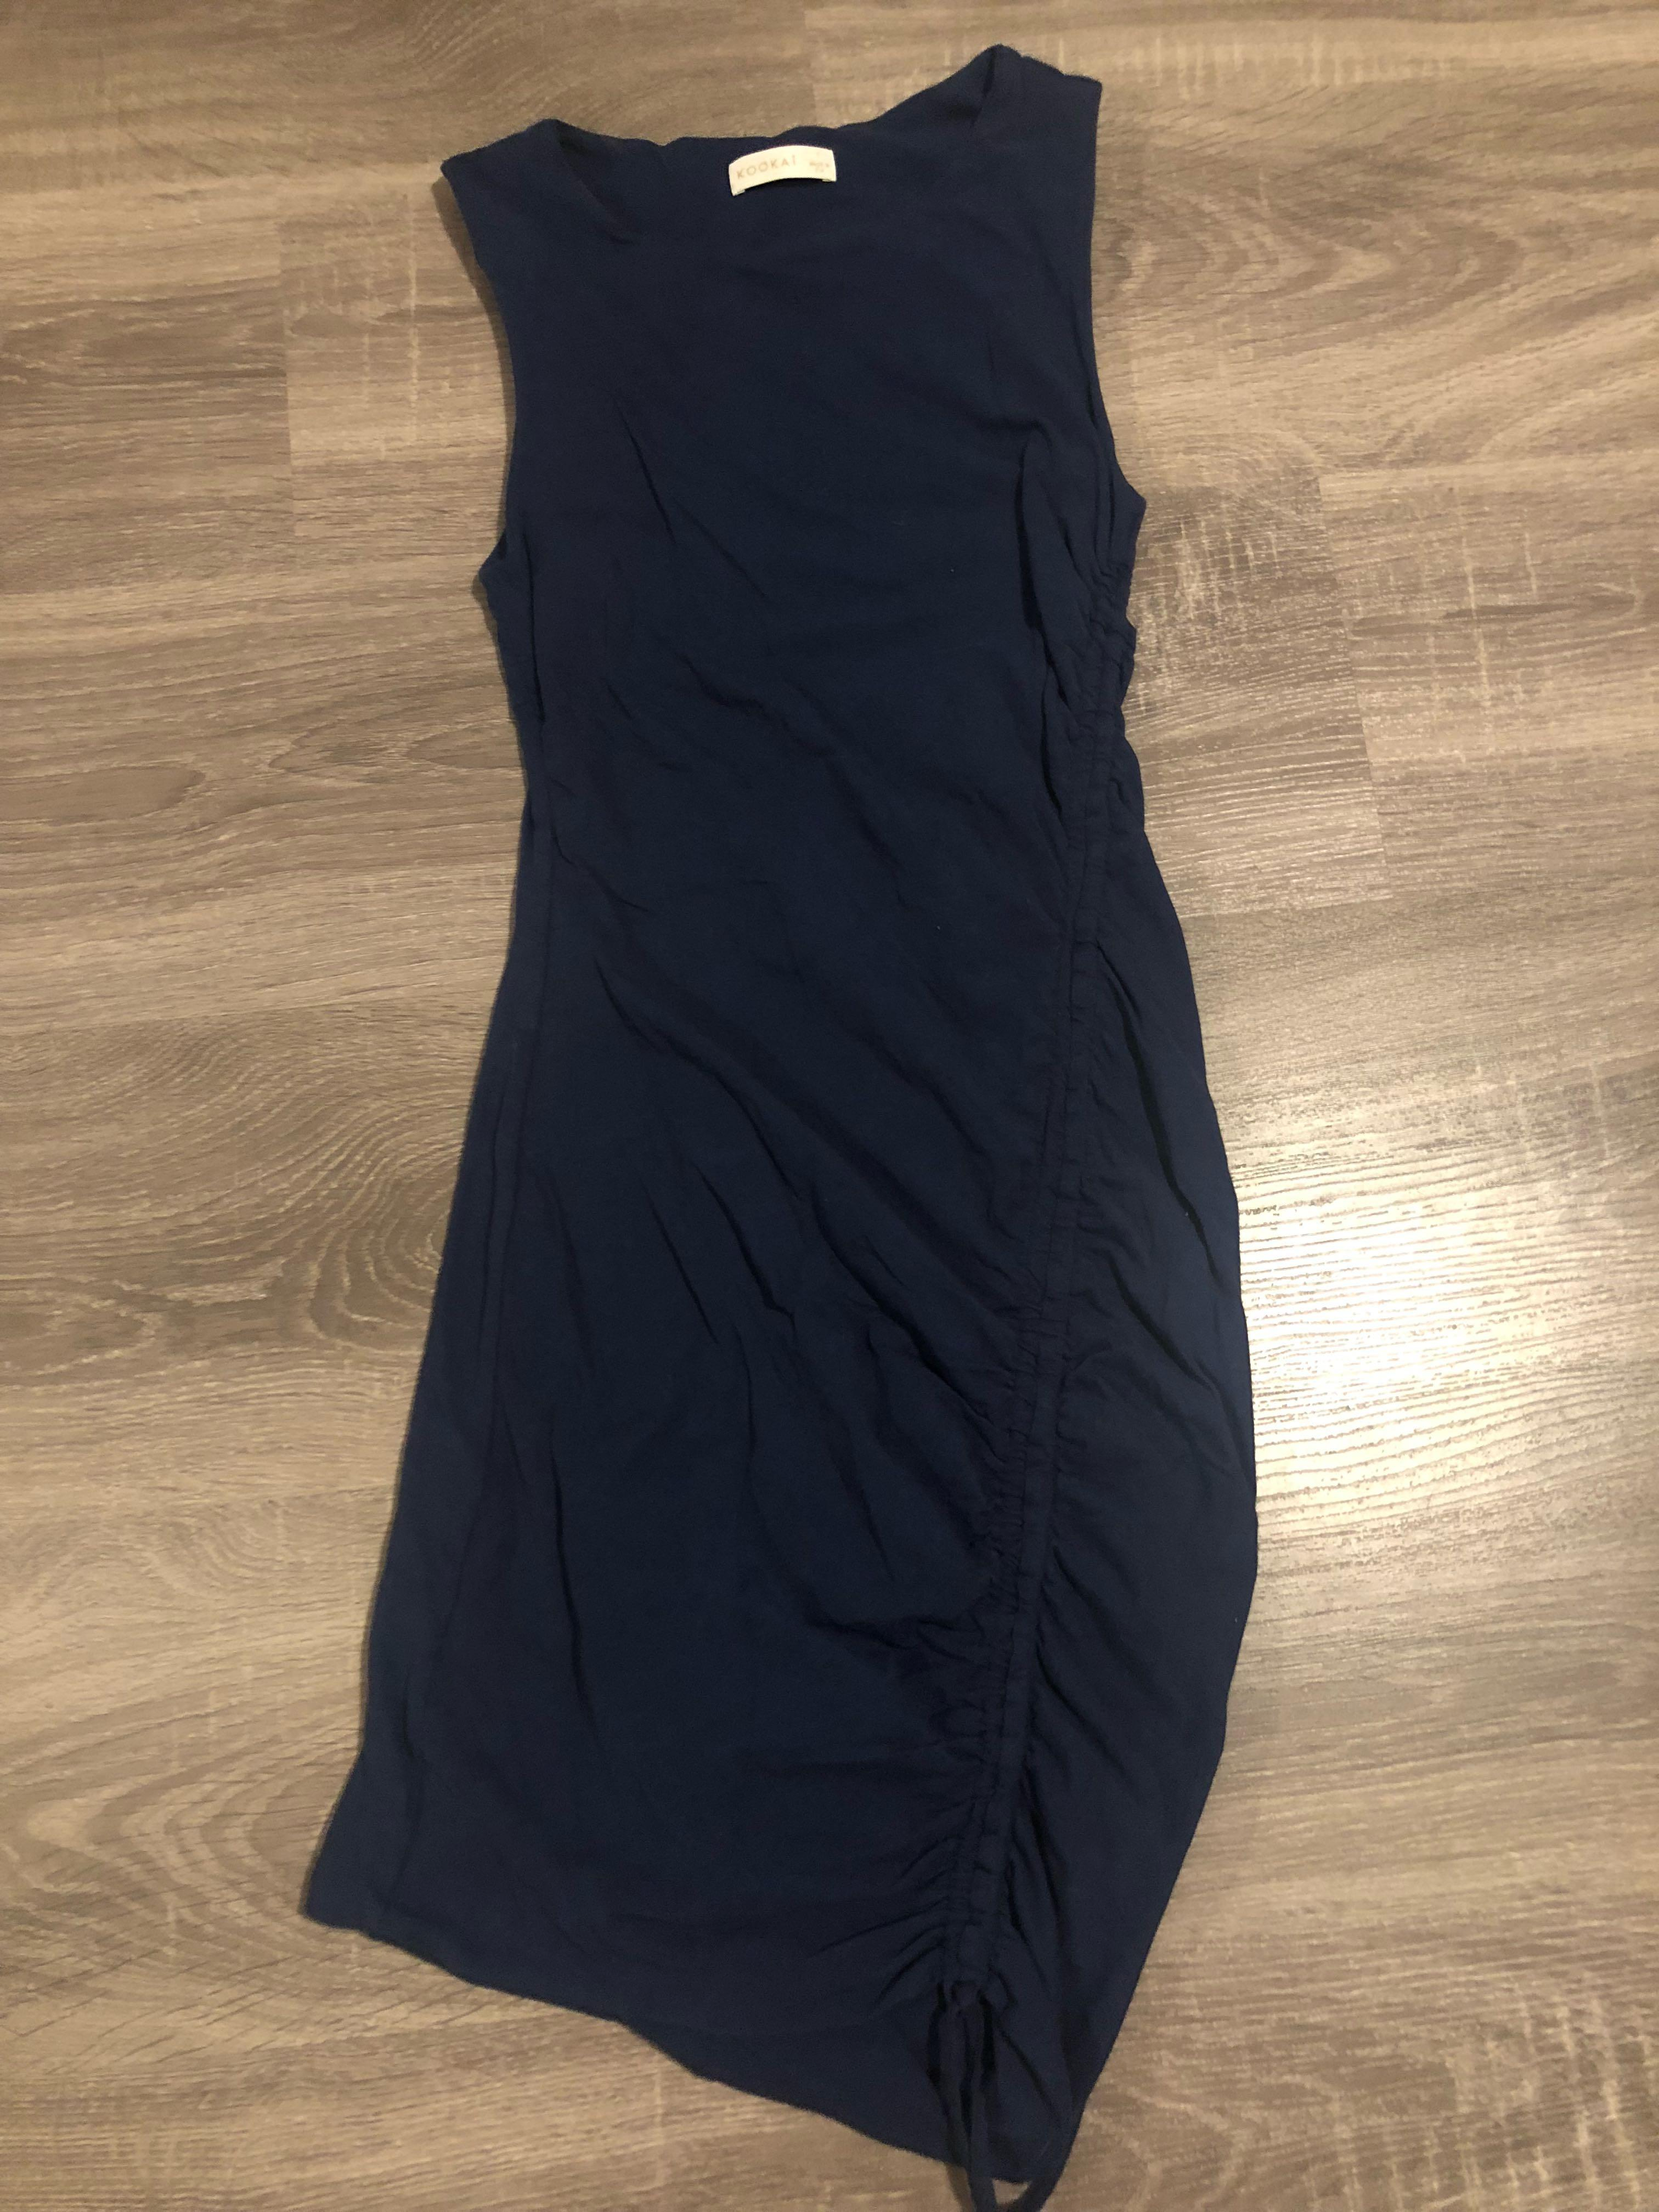 Brand new without tags - Kookai dress navy size 1 (6-8)